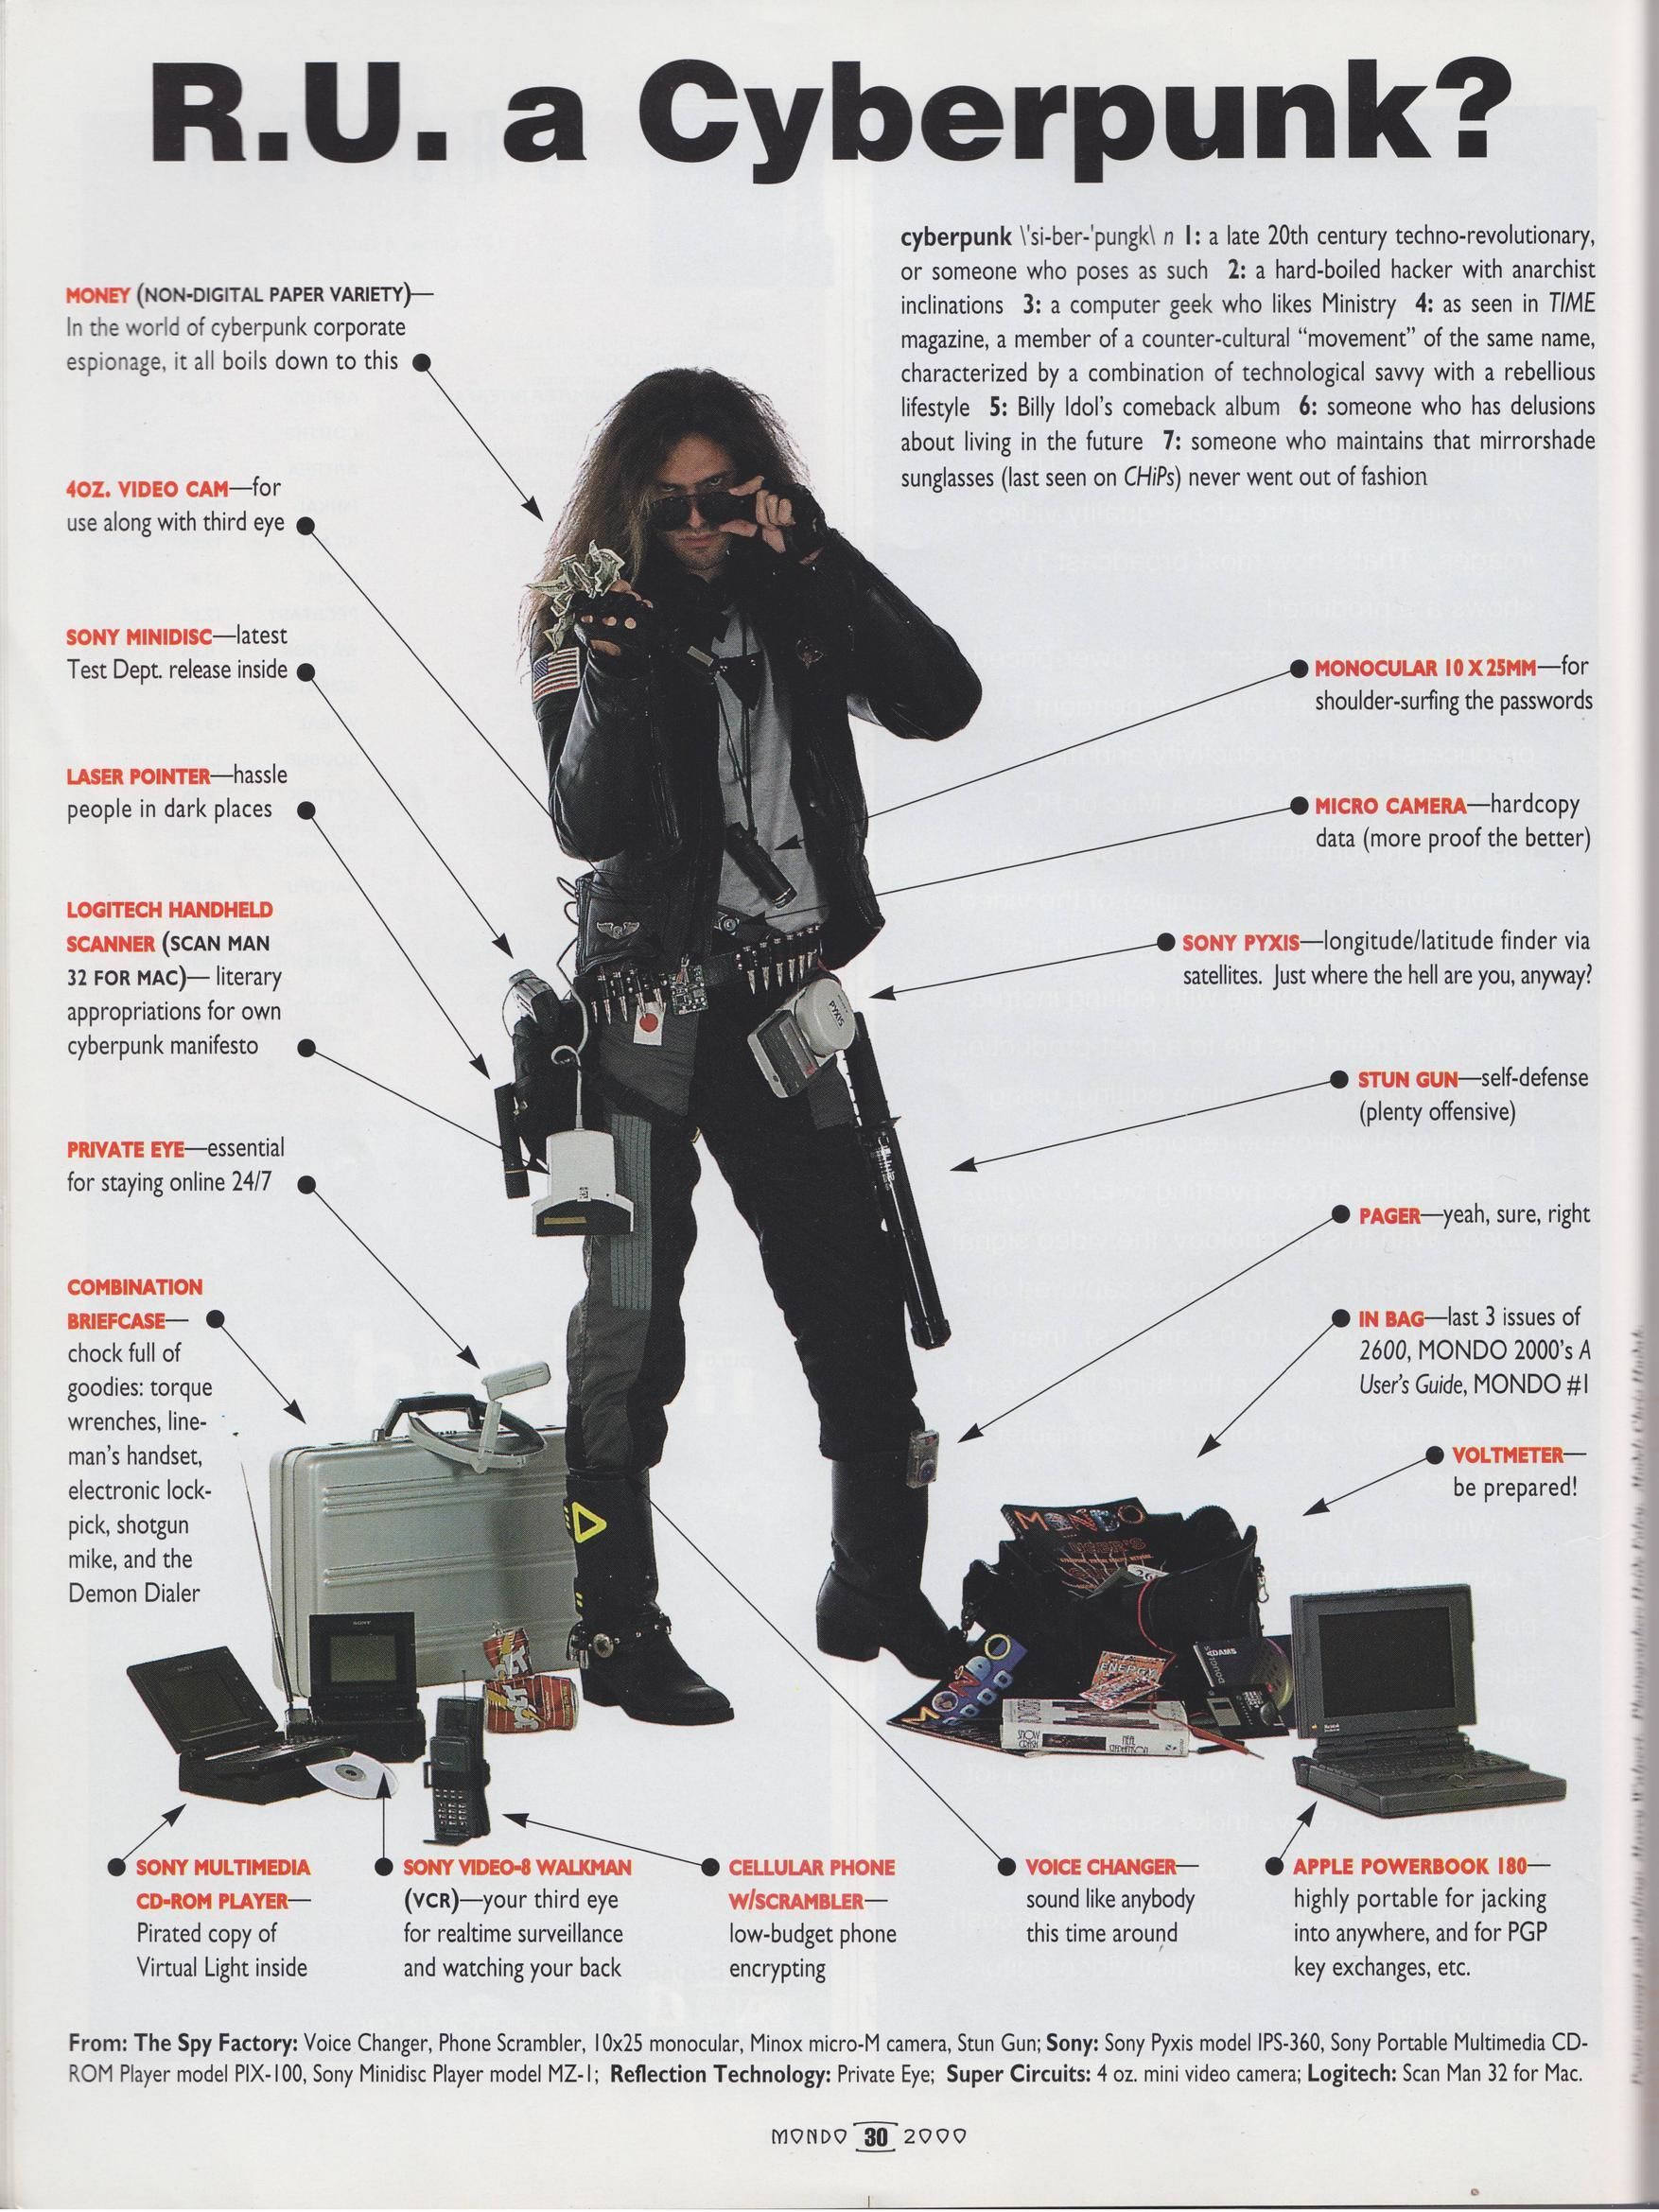 R U A Cyberpunk General Radness Retro Futurism The Free Information Society Stun Gun Electronic Circuit Schematic This Diagram Is Awesome